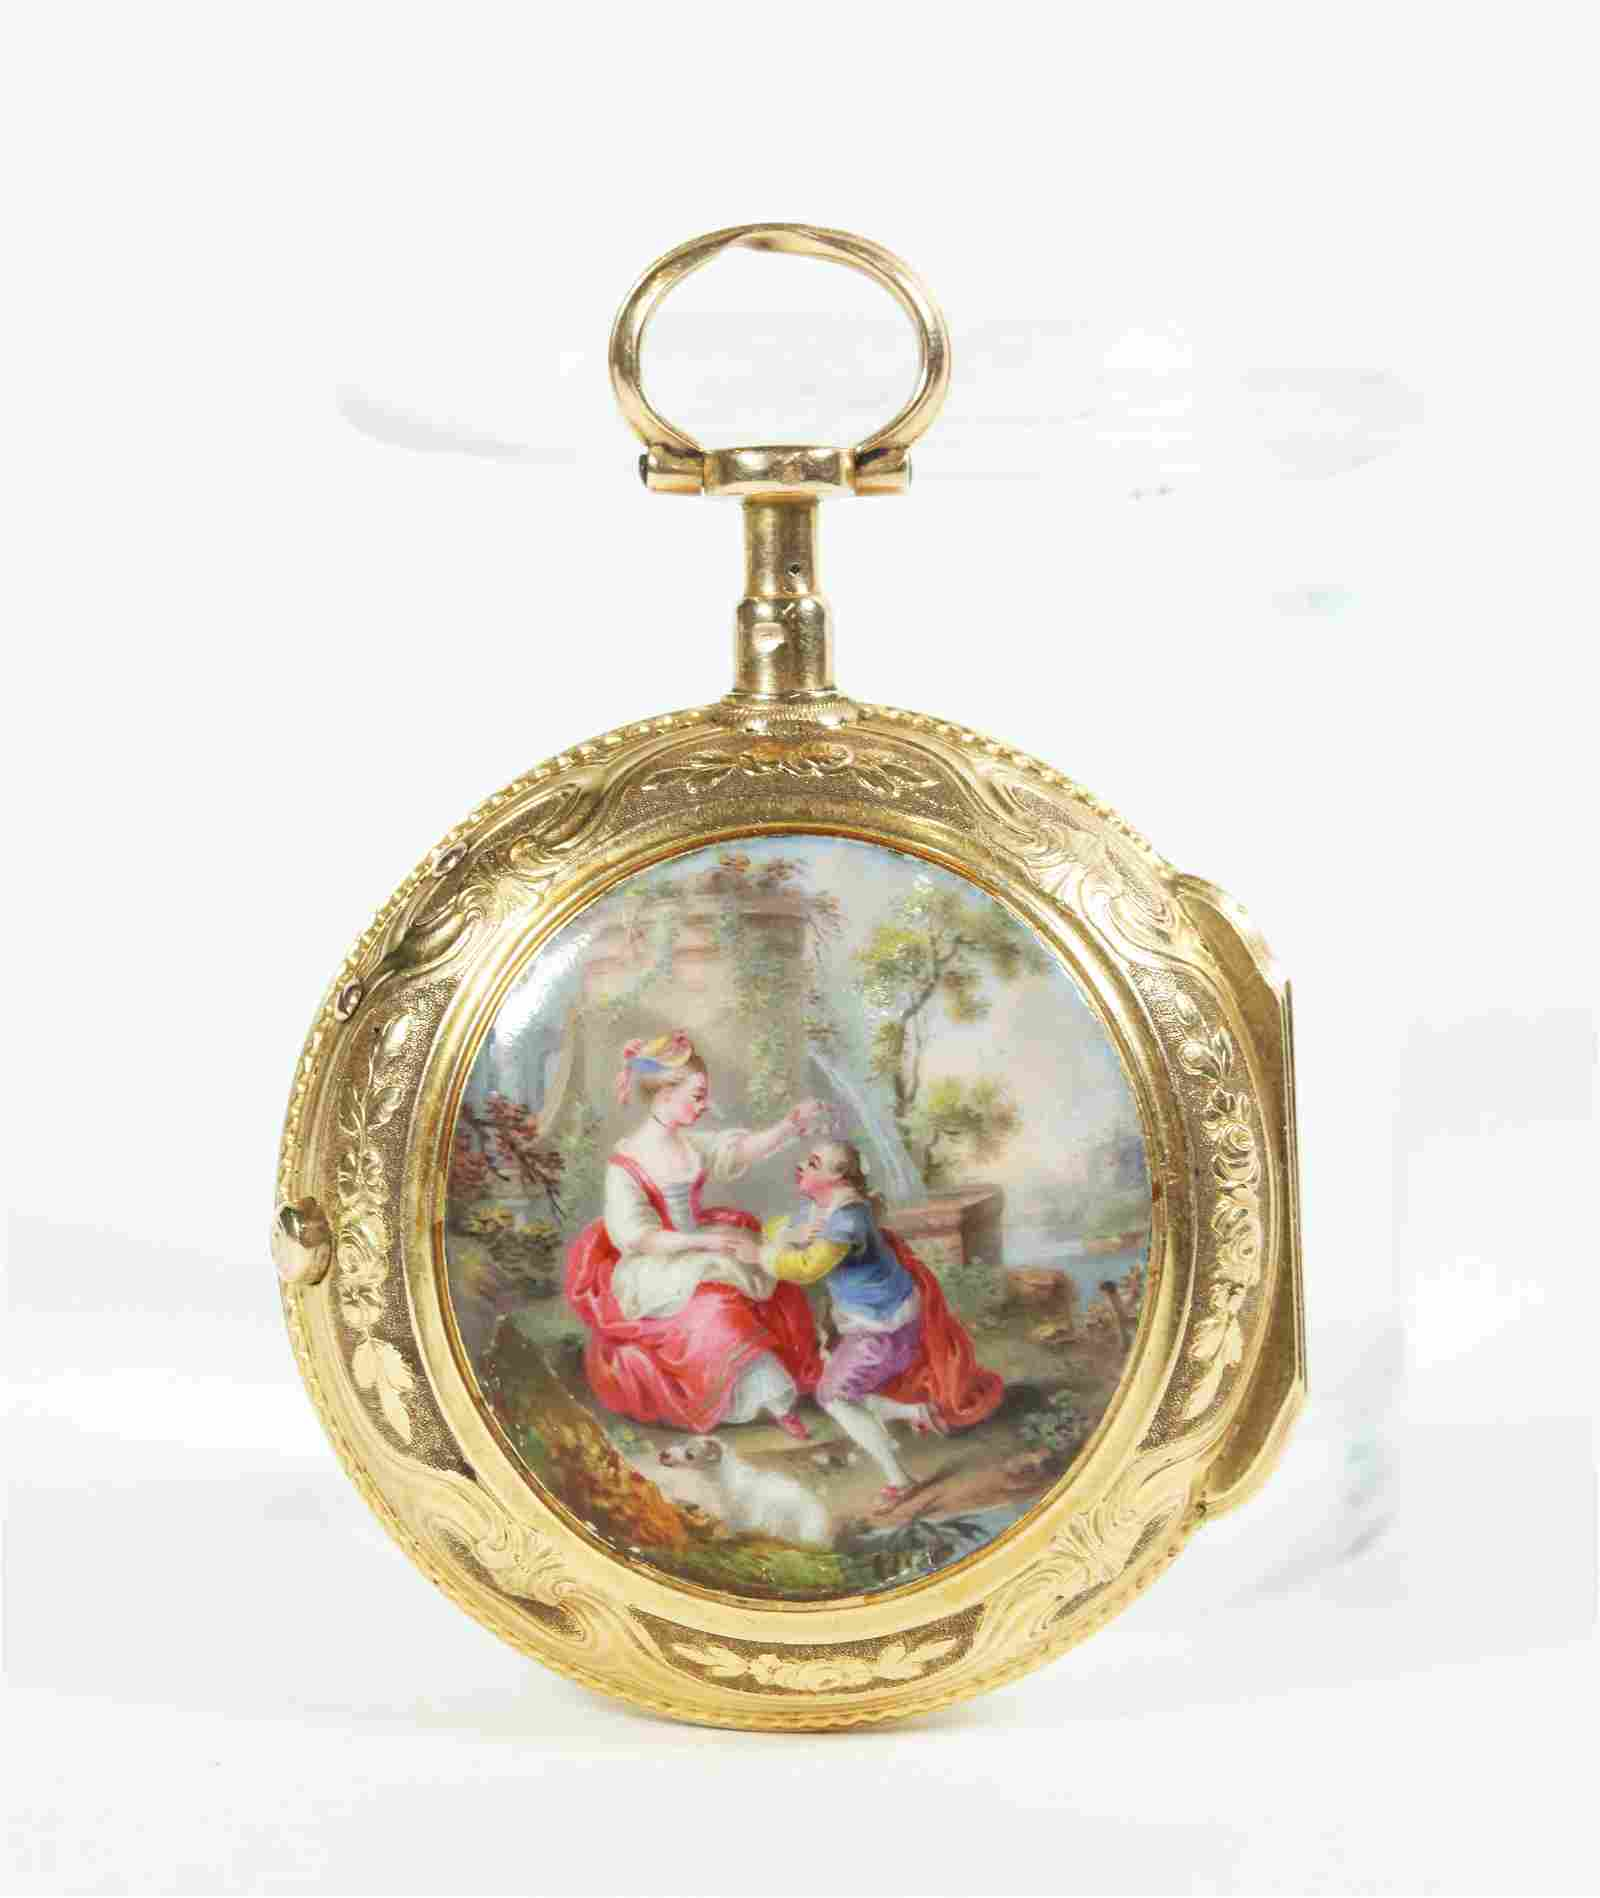 Rey 18 Century Enameled 18K Gold Pocket Watch